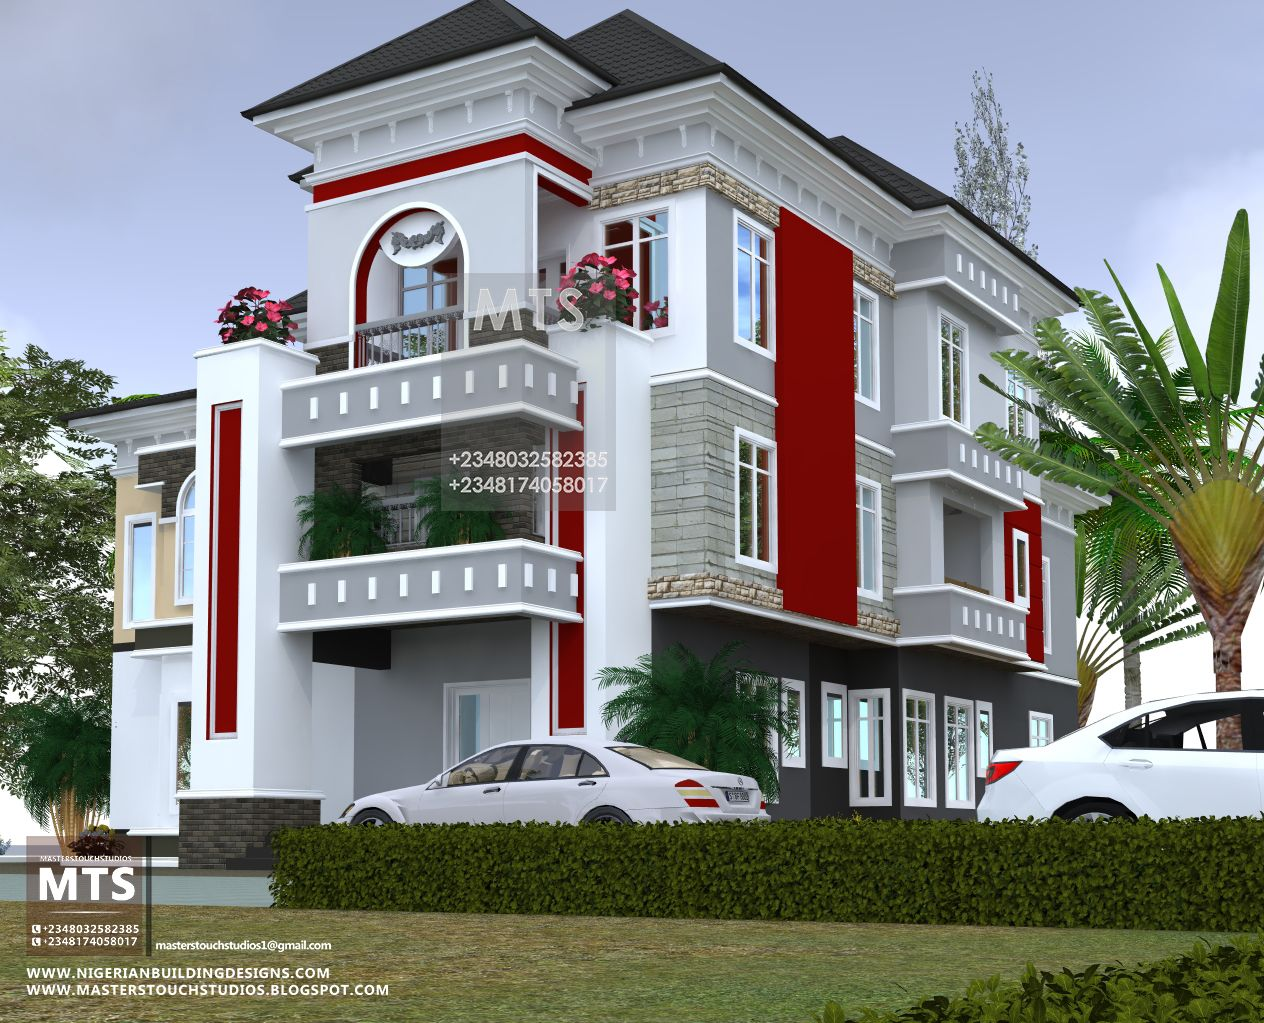 6 Bedroom Beautiful Duplex With Pent Floor House Plans Mansion House Plan Gallery House Styles